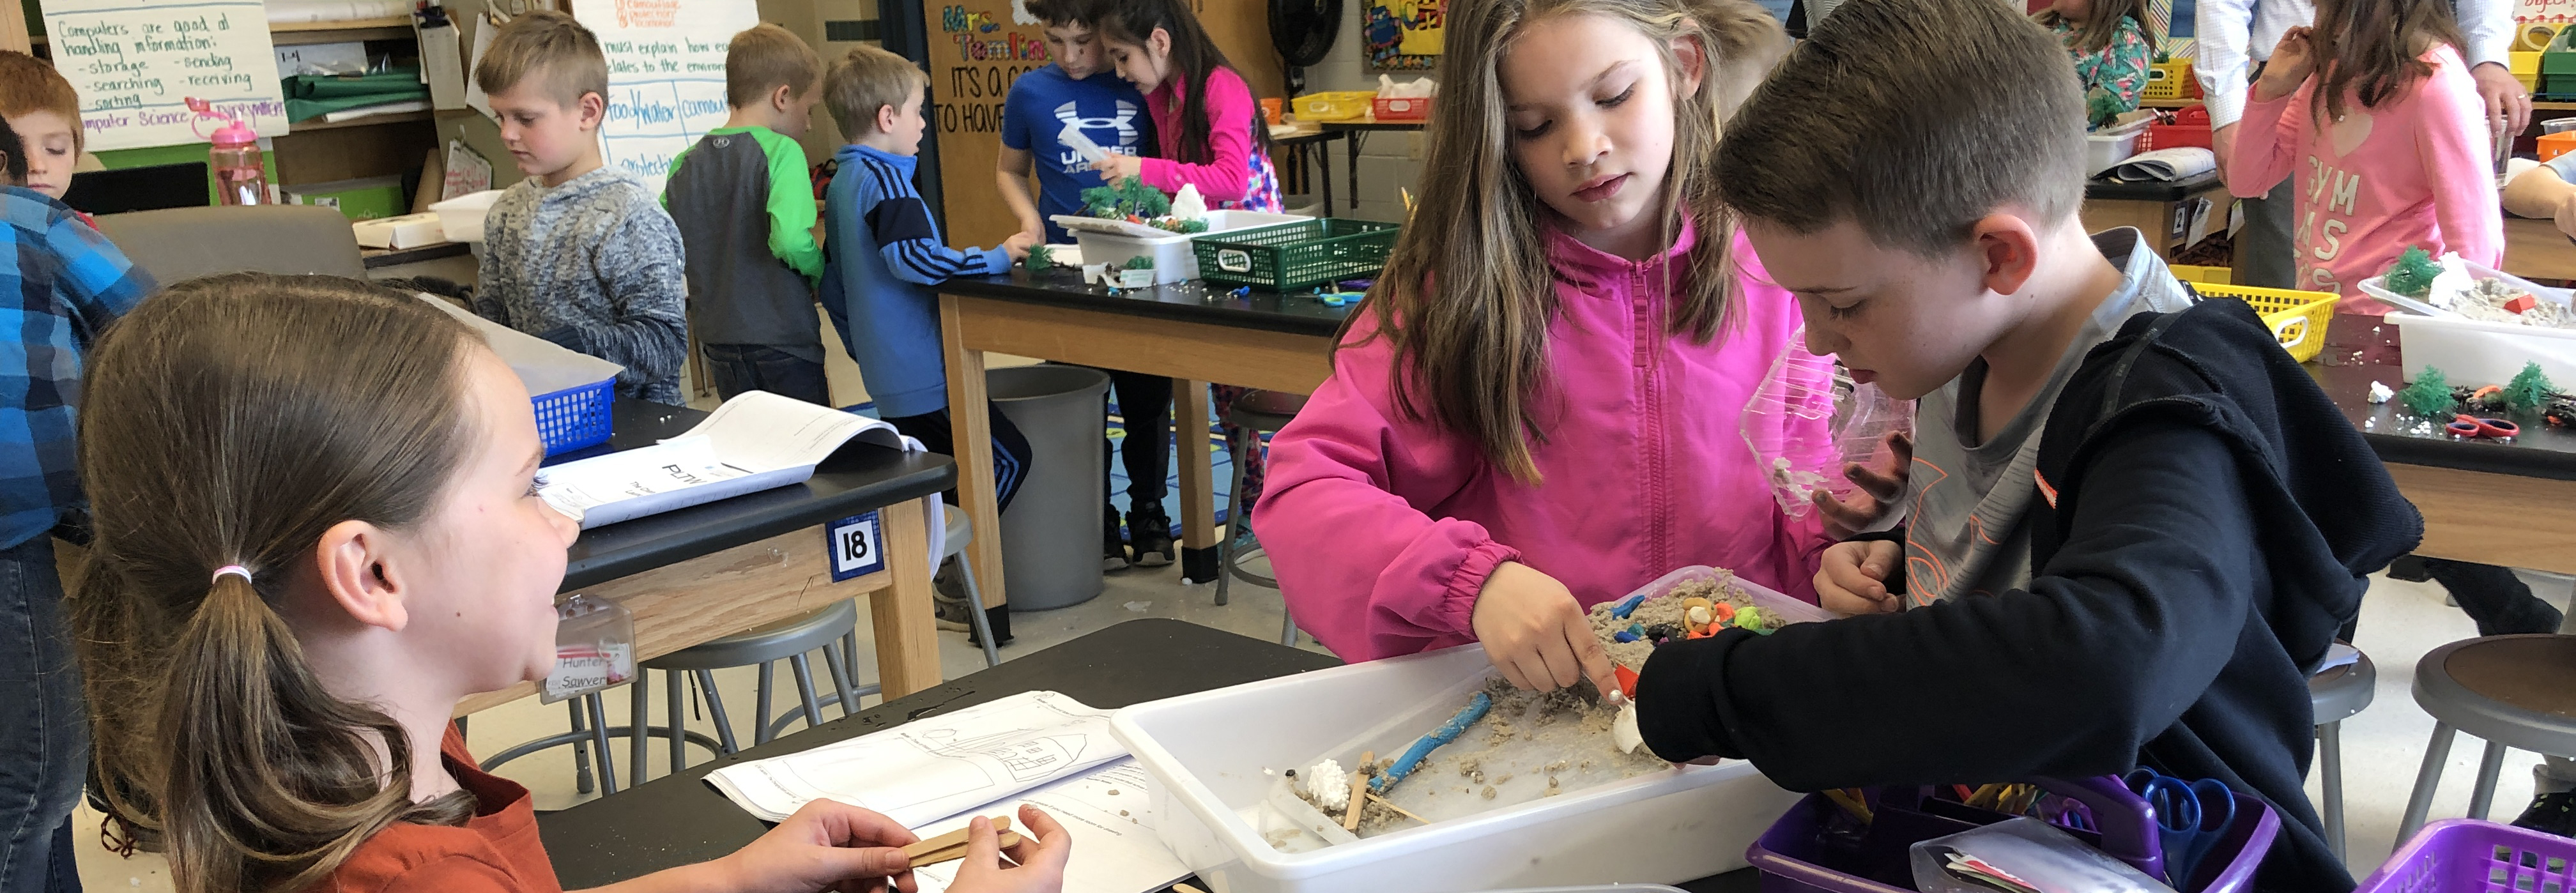 three students collaborating around a tray with building materials